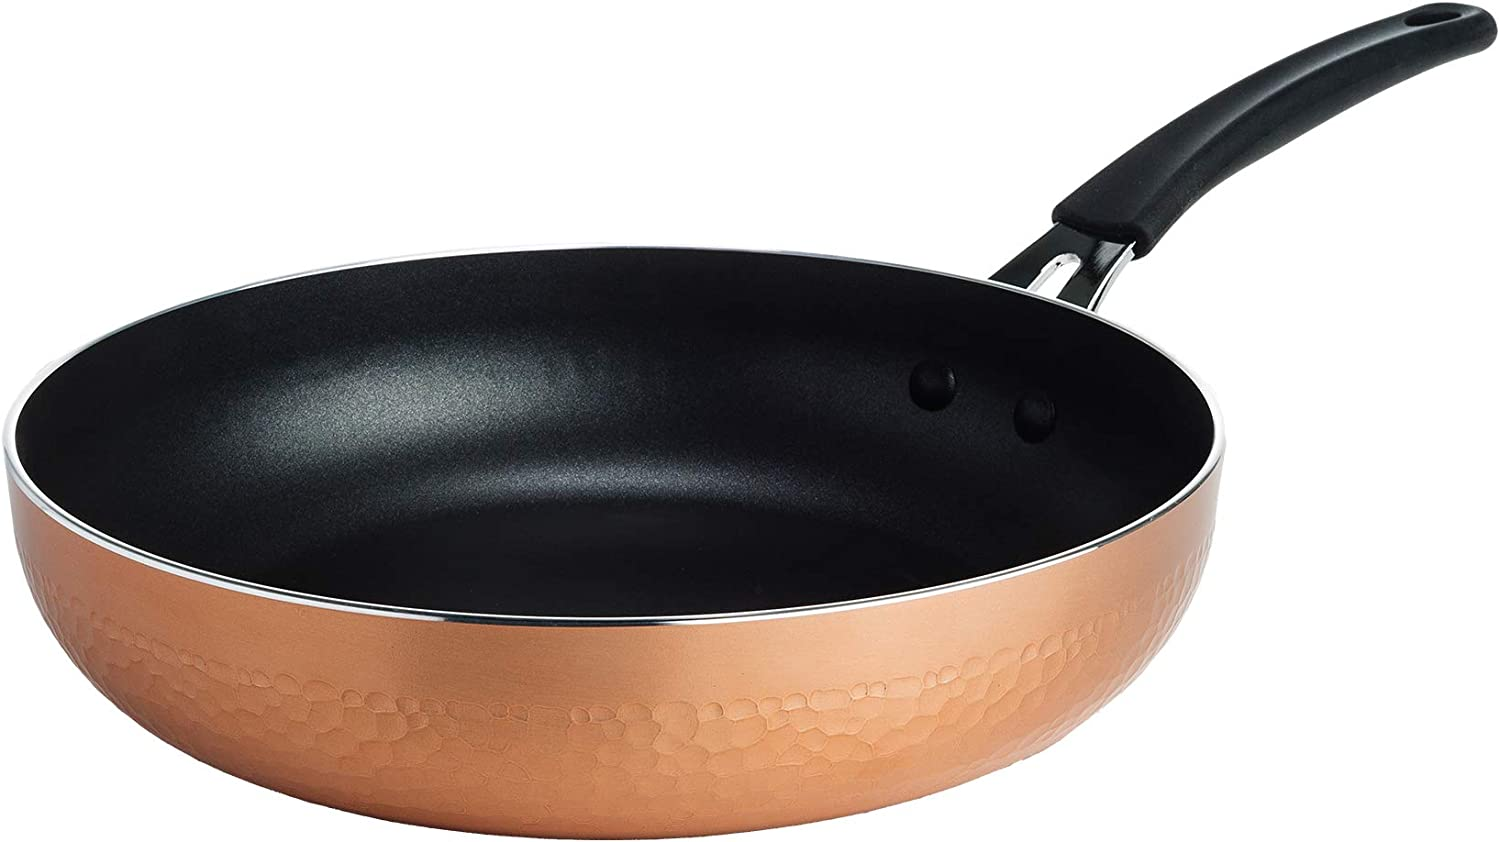 Ecolution Impressions Hammered Non-Stick Frying Pan, Dishwasher Safe, Riveted Stainless Steel Handle, 10 Inch, Copper